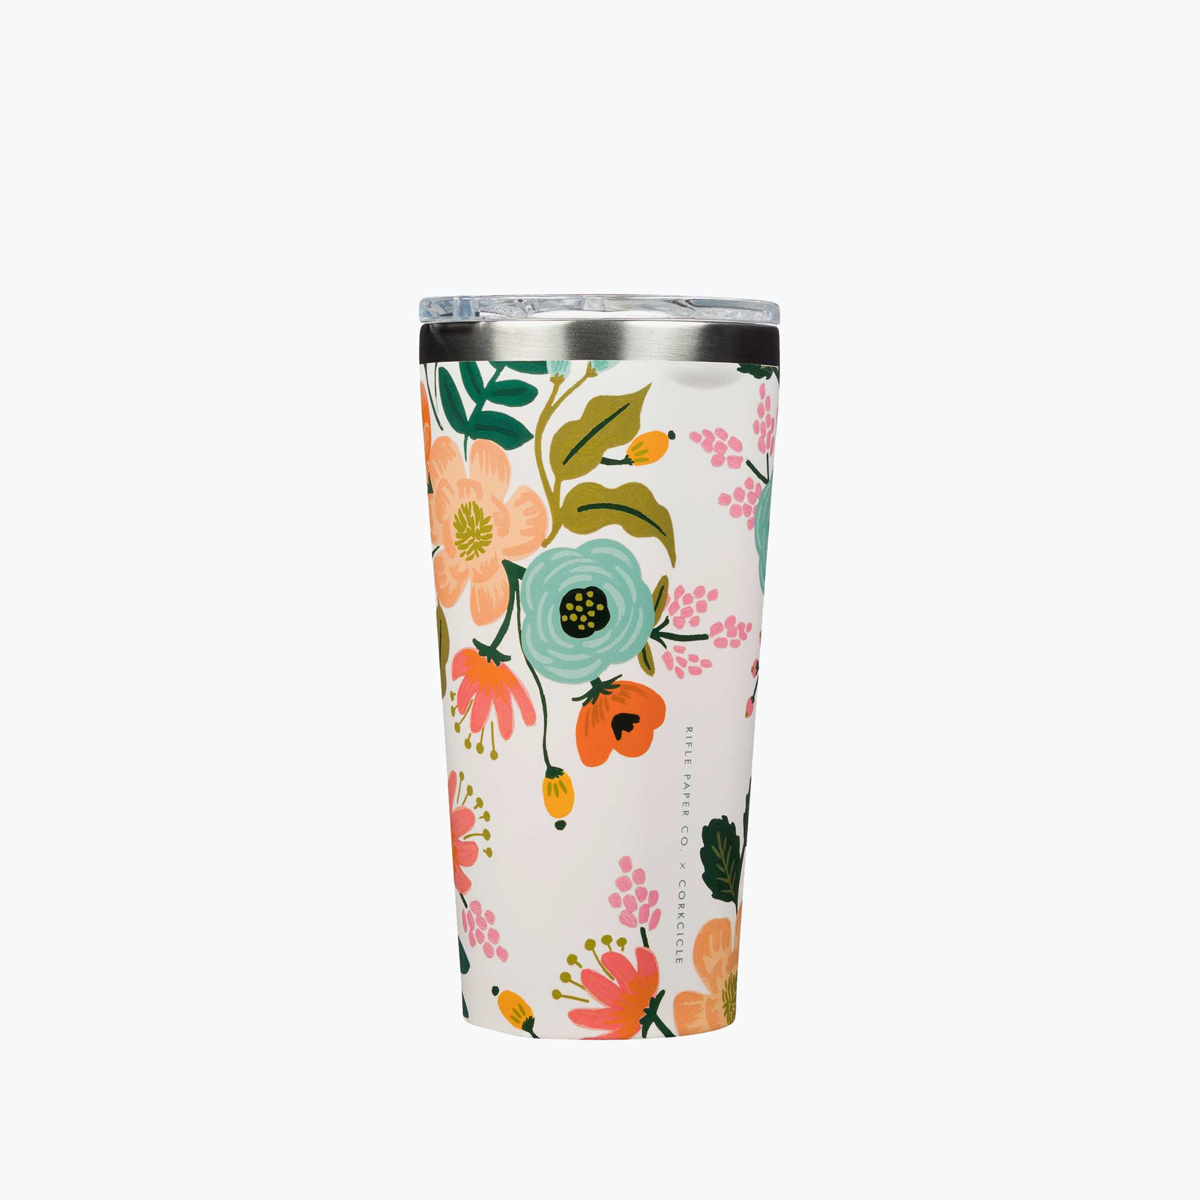 Corkcicle - CO Corkcicle x Rifle Paper Co - Cream Lively Floral Tumbler